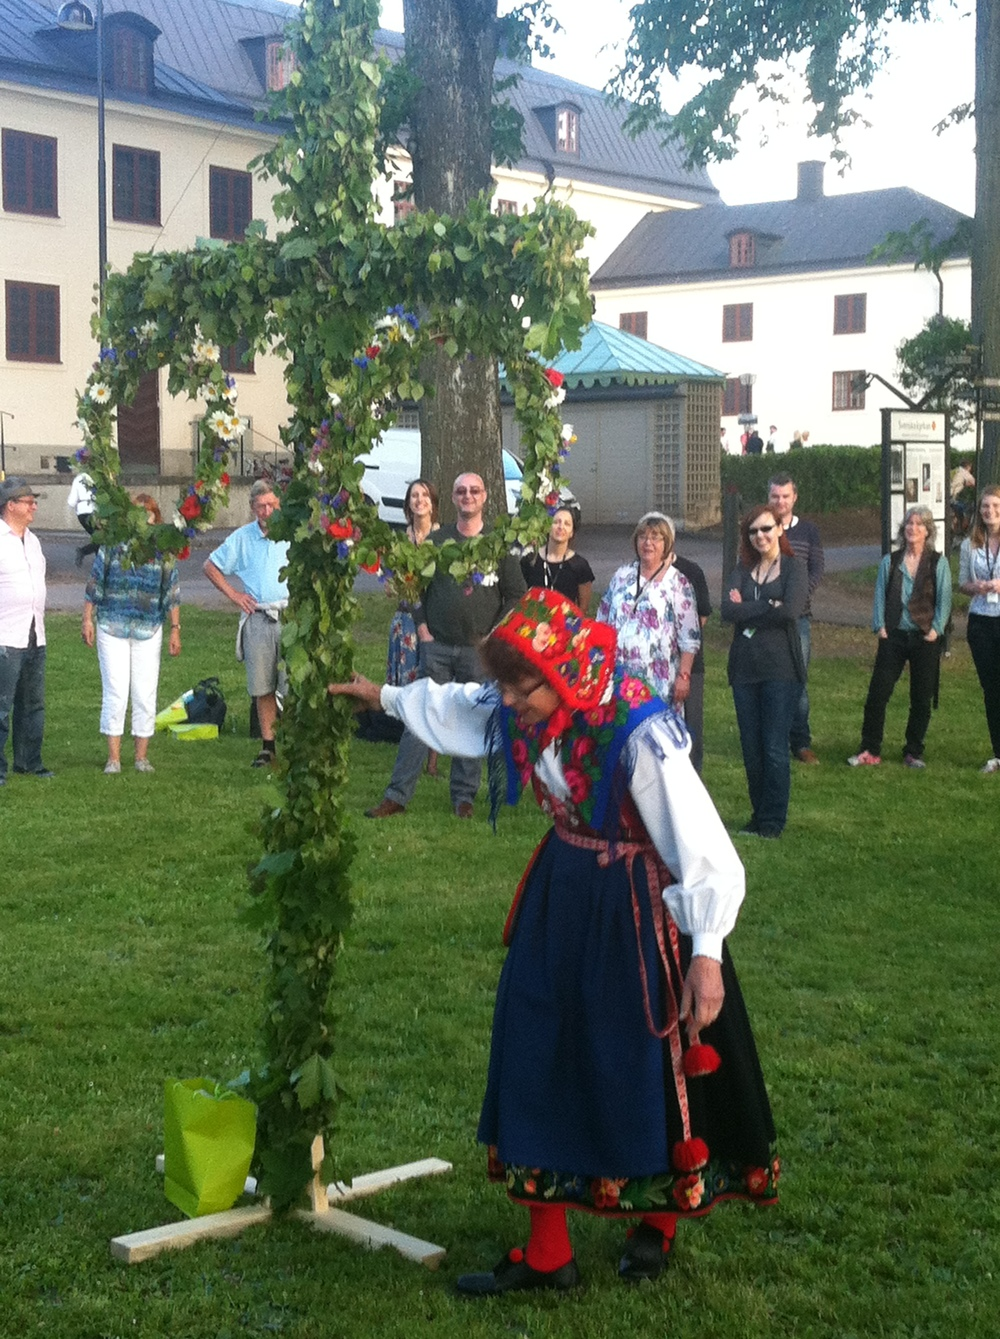 Traditional Midsummer celebrations